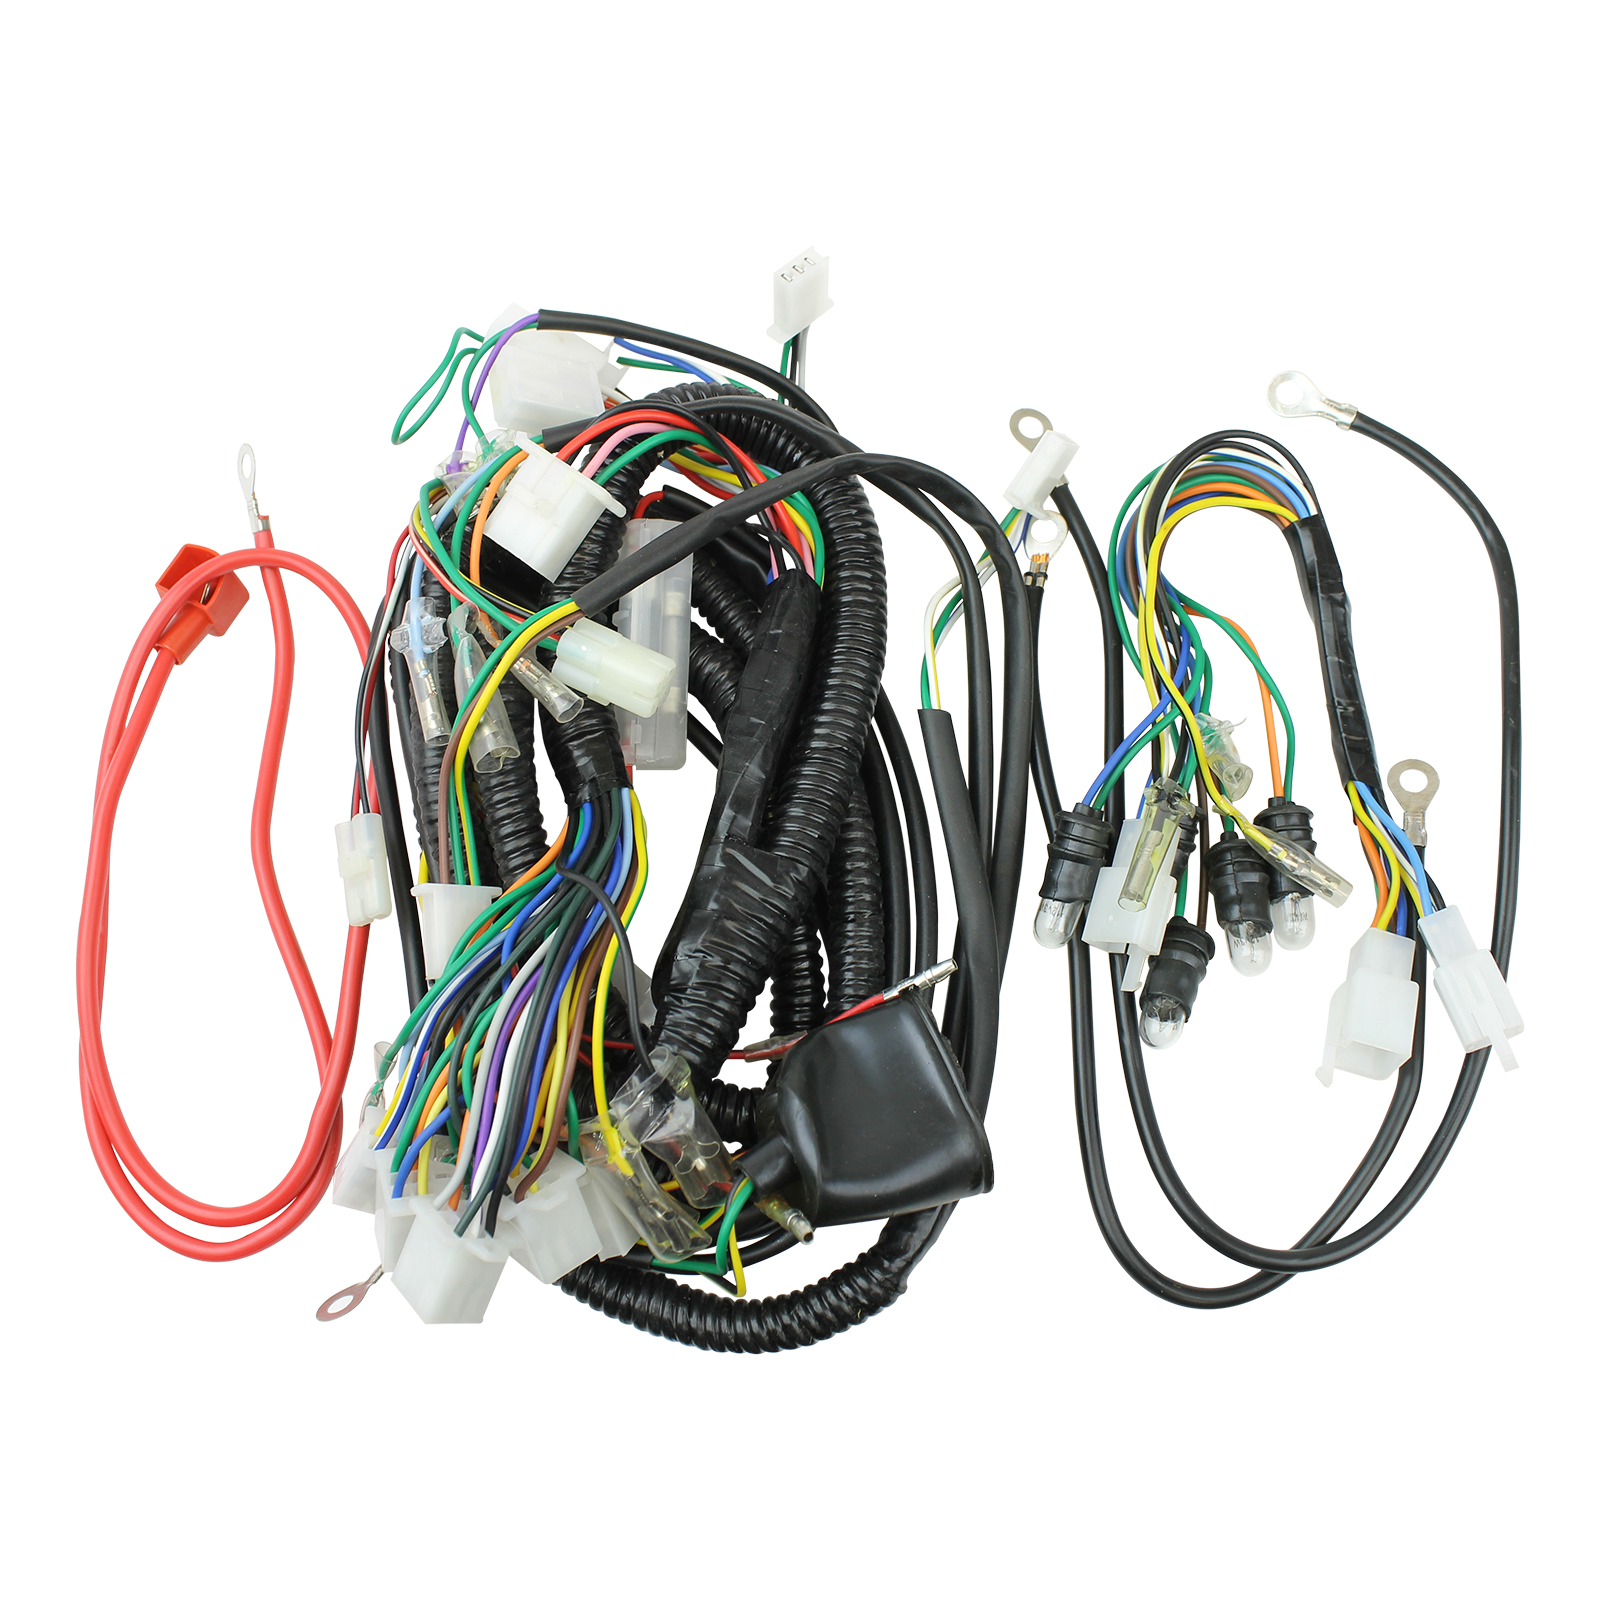 hight resolution of wiring harness 50cc scooter vip gy6 50cc scooter wiring harness 50cc scooter wiring harness